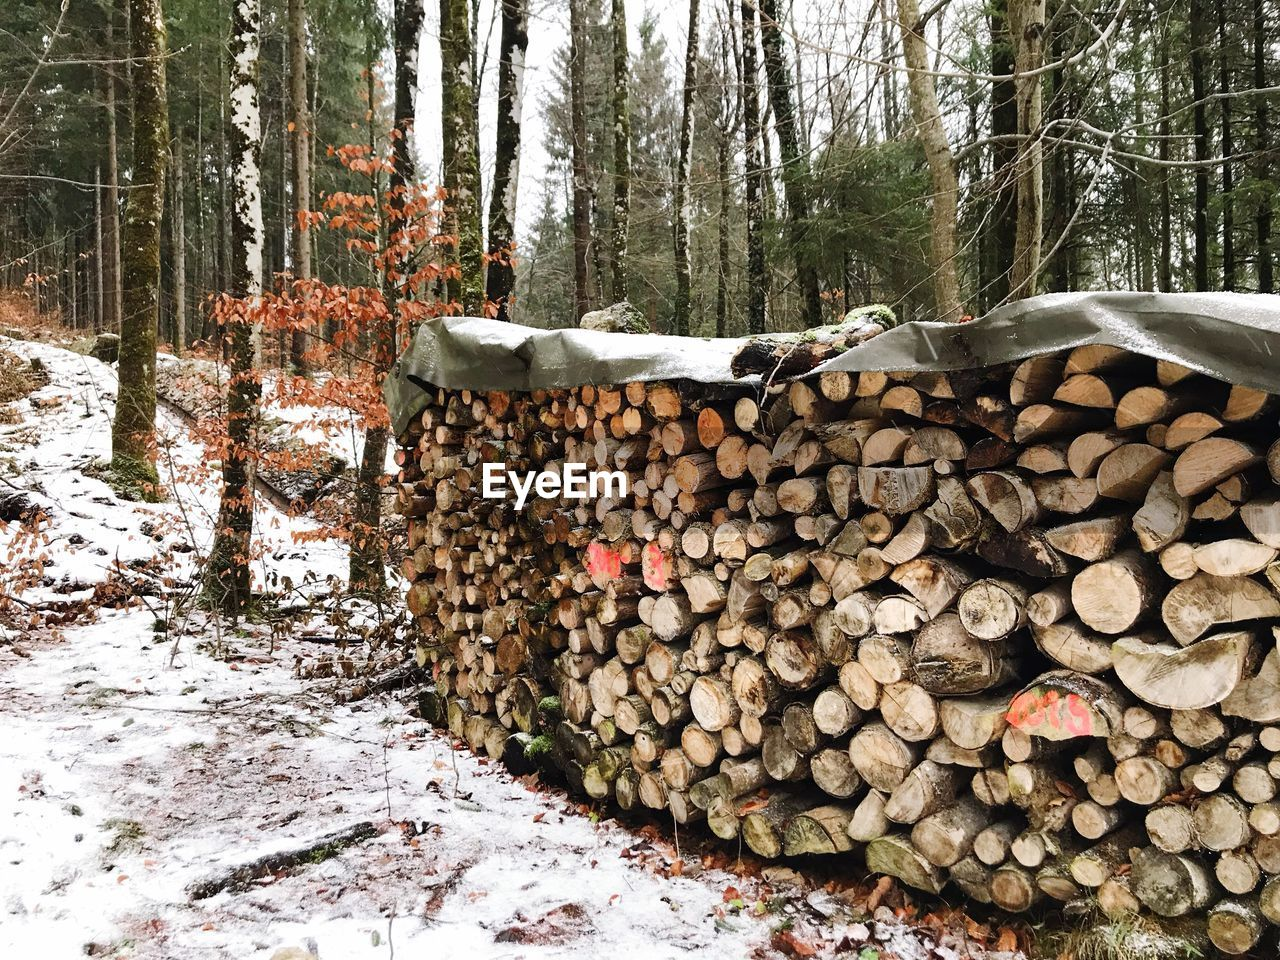 tree, forest, log, timber, firewood, stack, wood, large group of objects, deforestation, abundance, lumber industry, plant, wood - material, nature, land, winter, cold temperature, snow, day, woodpile, no people, outdoors, woodland